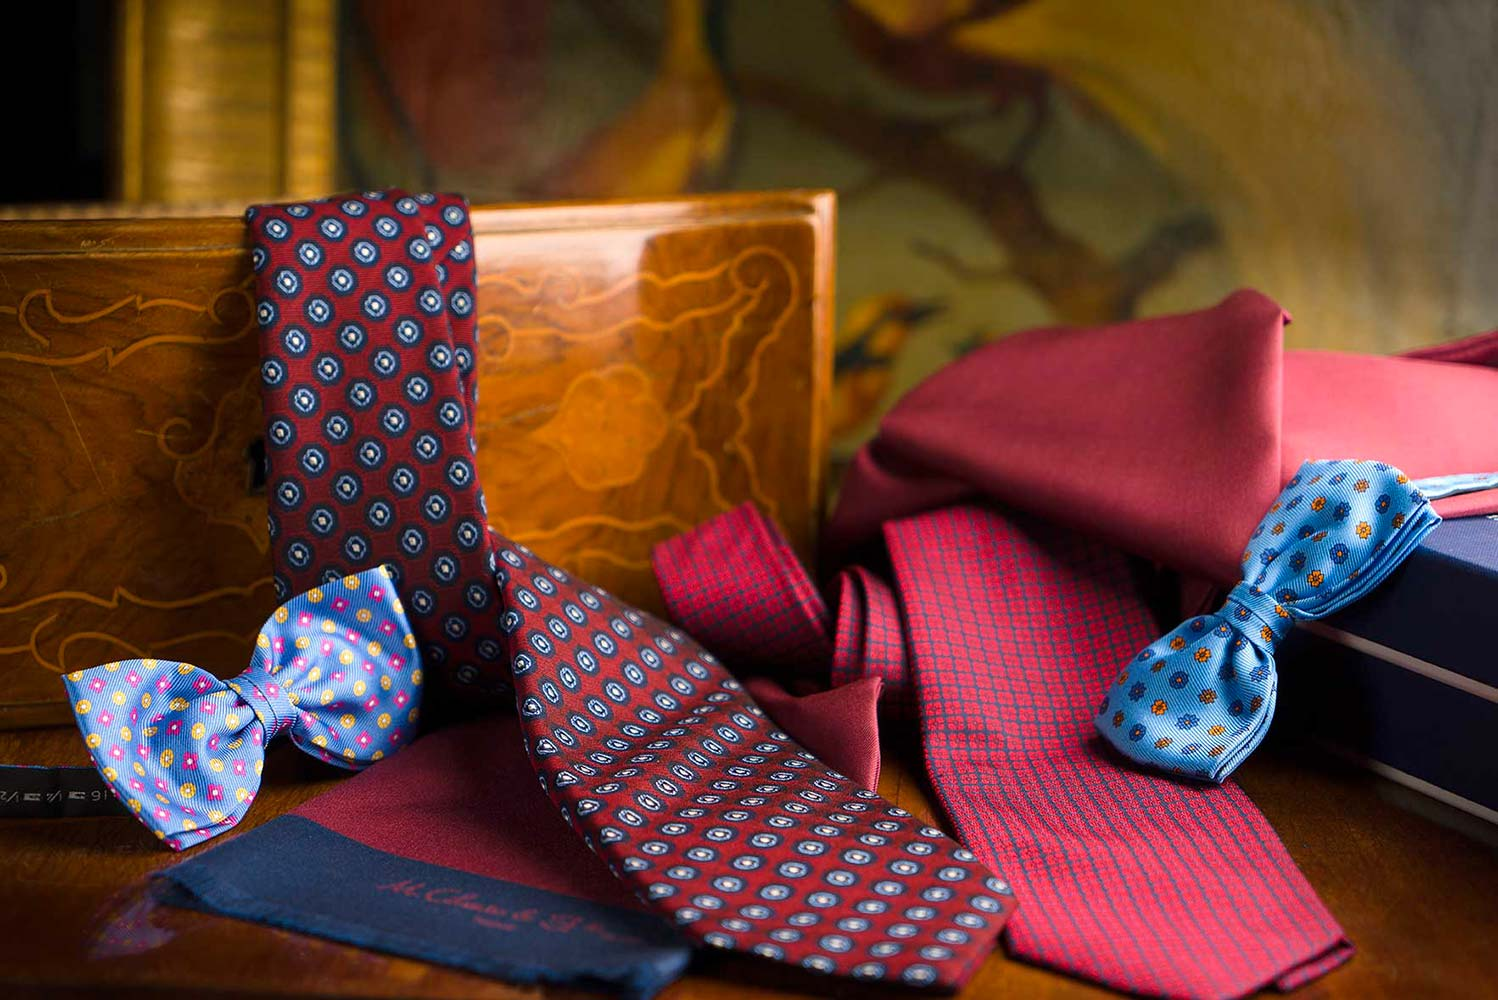 Ties and papillon